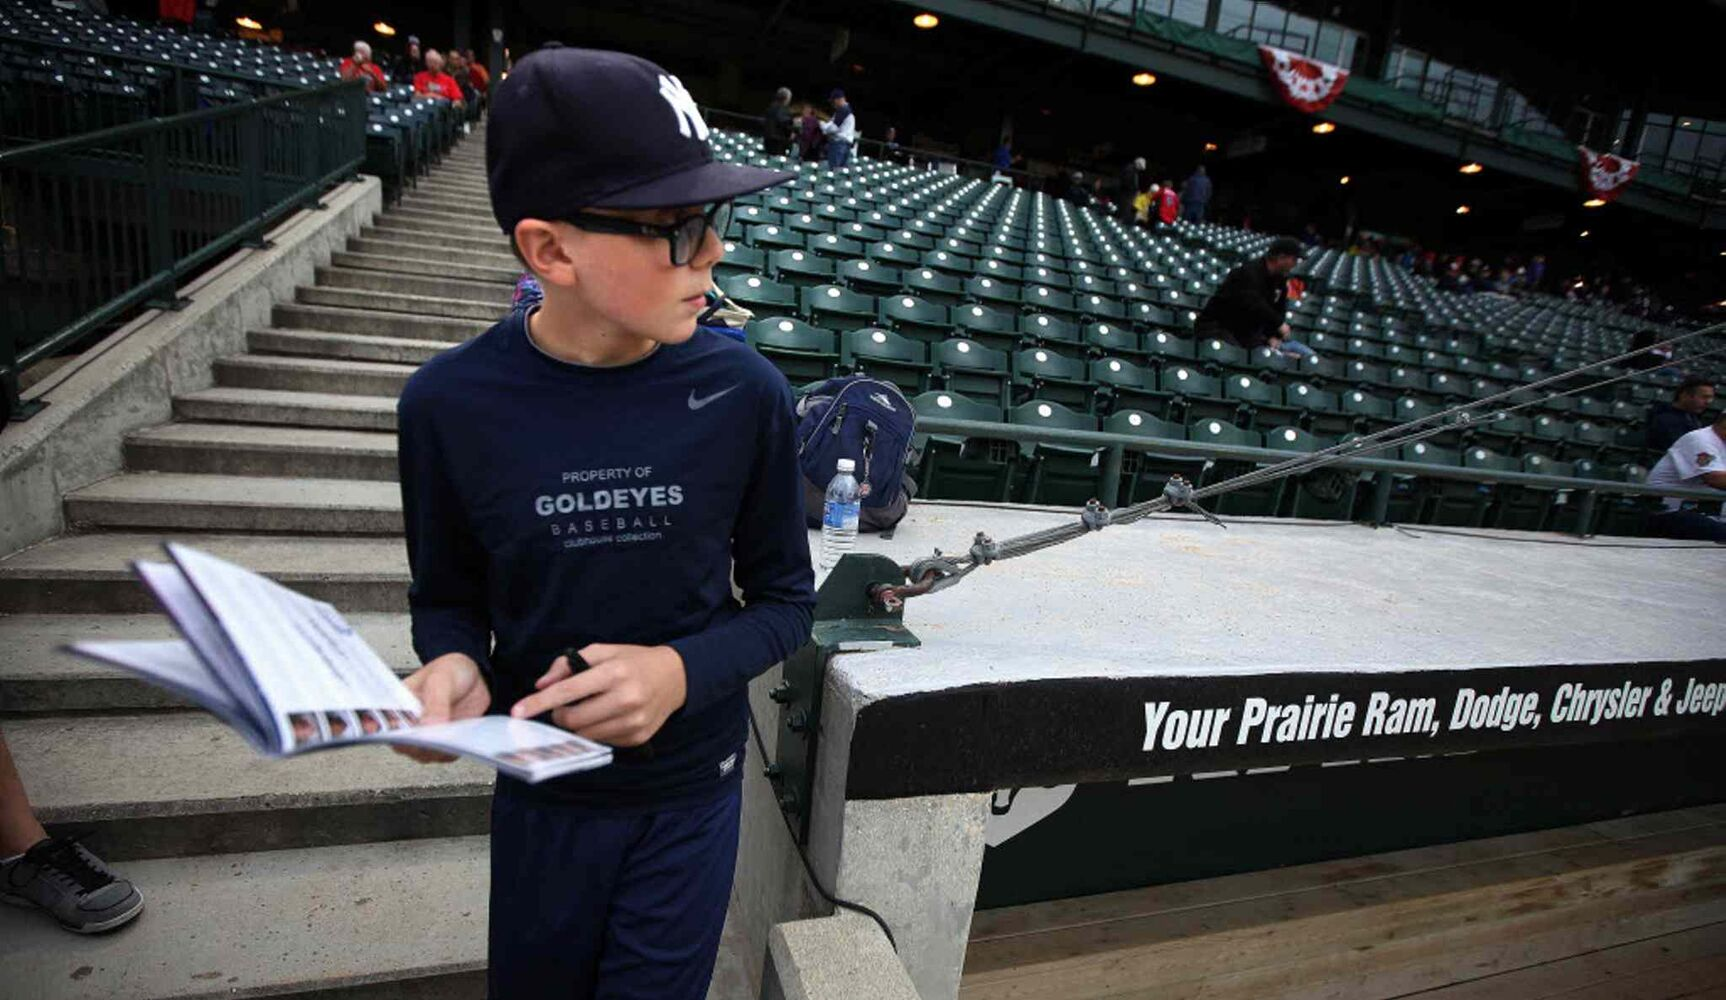 Goldeyes fan Nicholas Kuhlman, 12, shows up early to most of the team's games with his program and pen handy. He's got all of the Goldeyes' players signatures but is always on the hunt for new autographs.